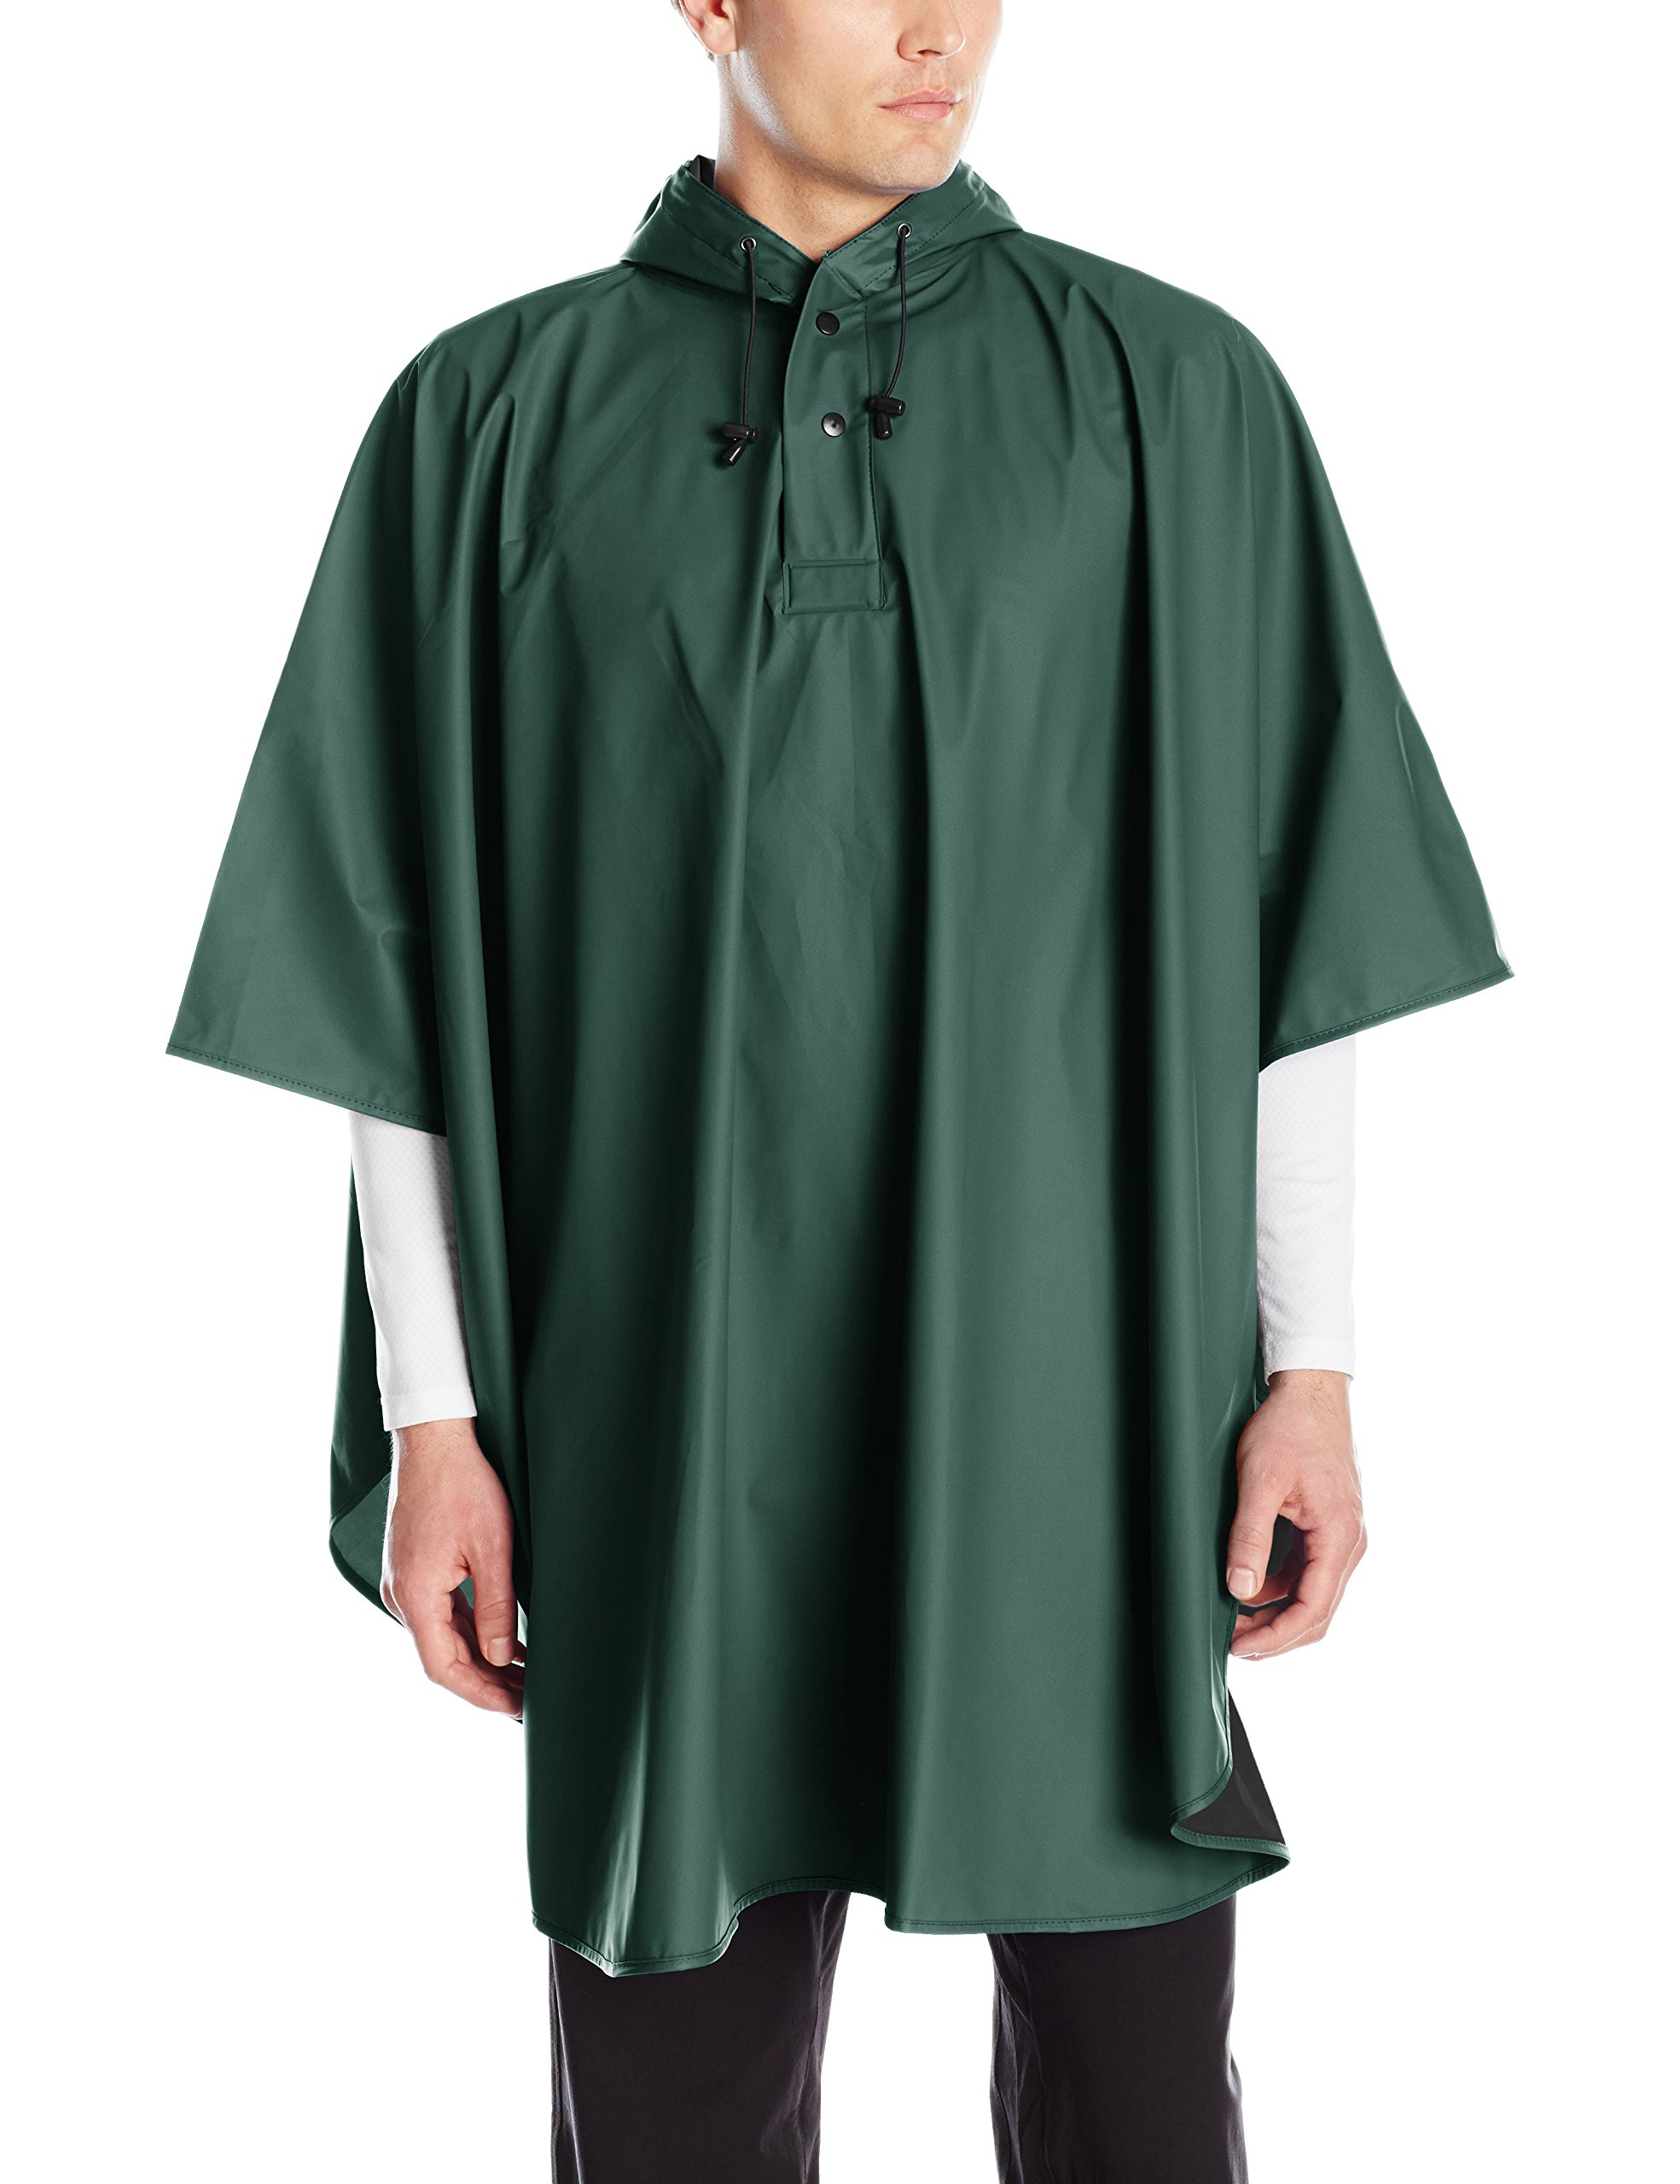 Charles River Apparel Men's Pacific Poncho, Forest, One Size